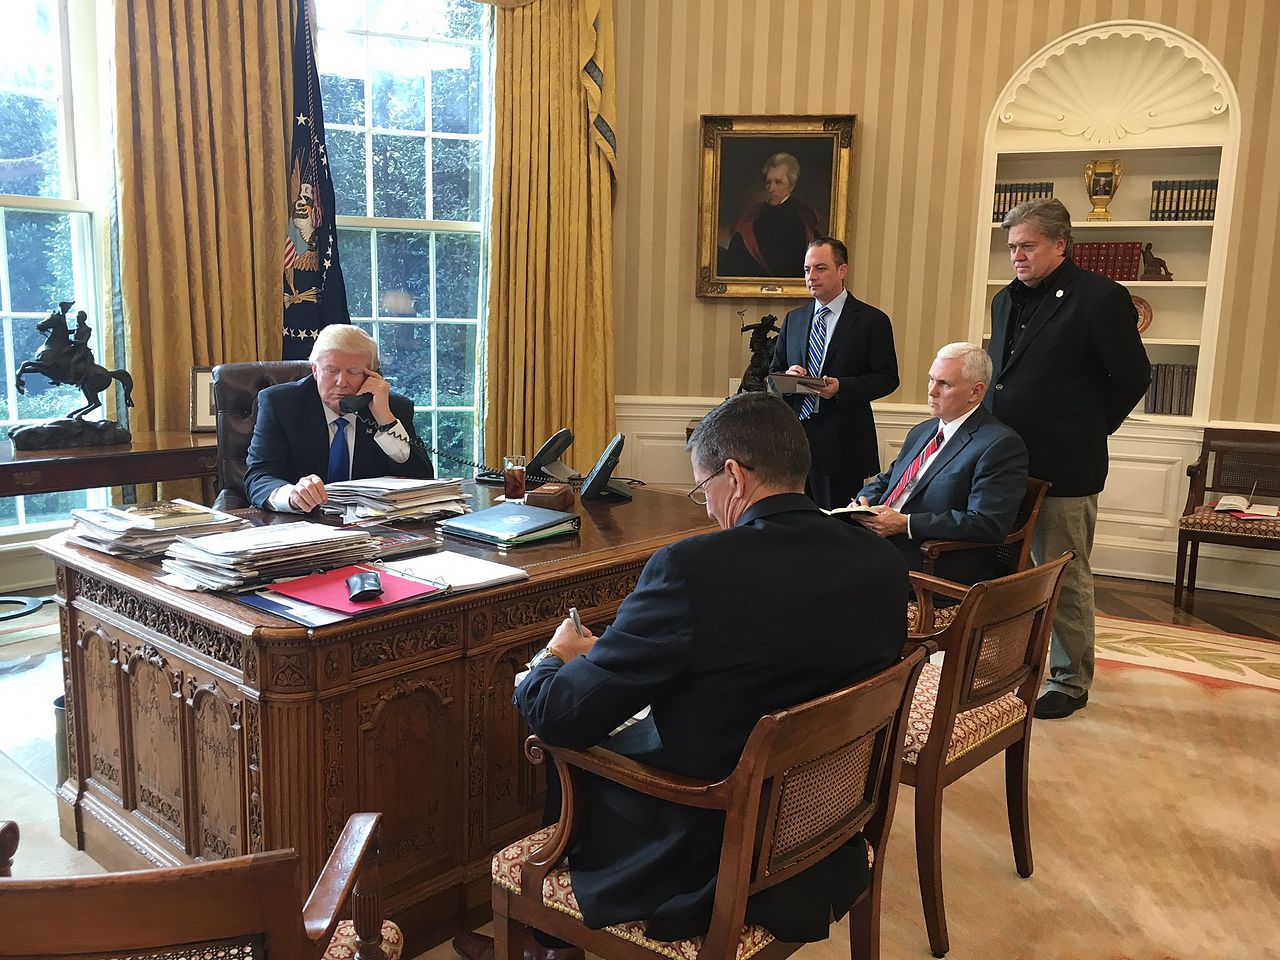 Trump speaking with Putin Oval Office photo Sean Spicer White House press secretary